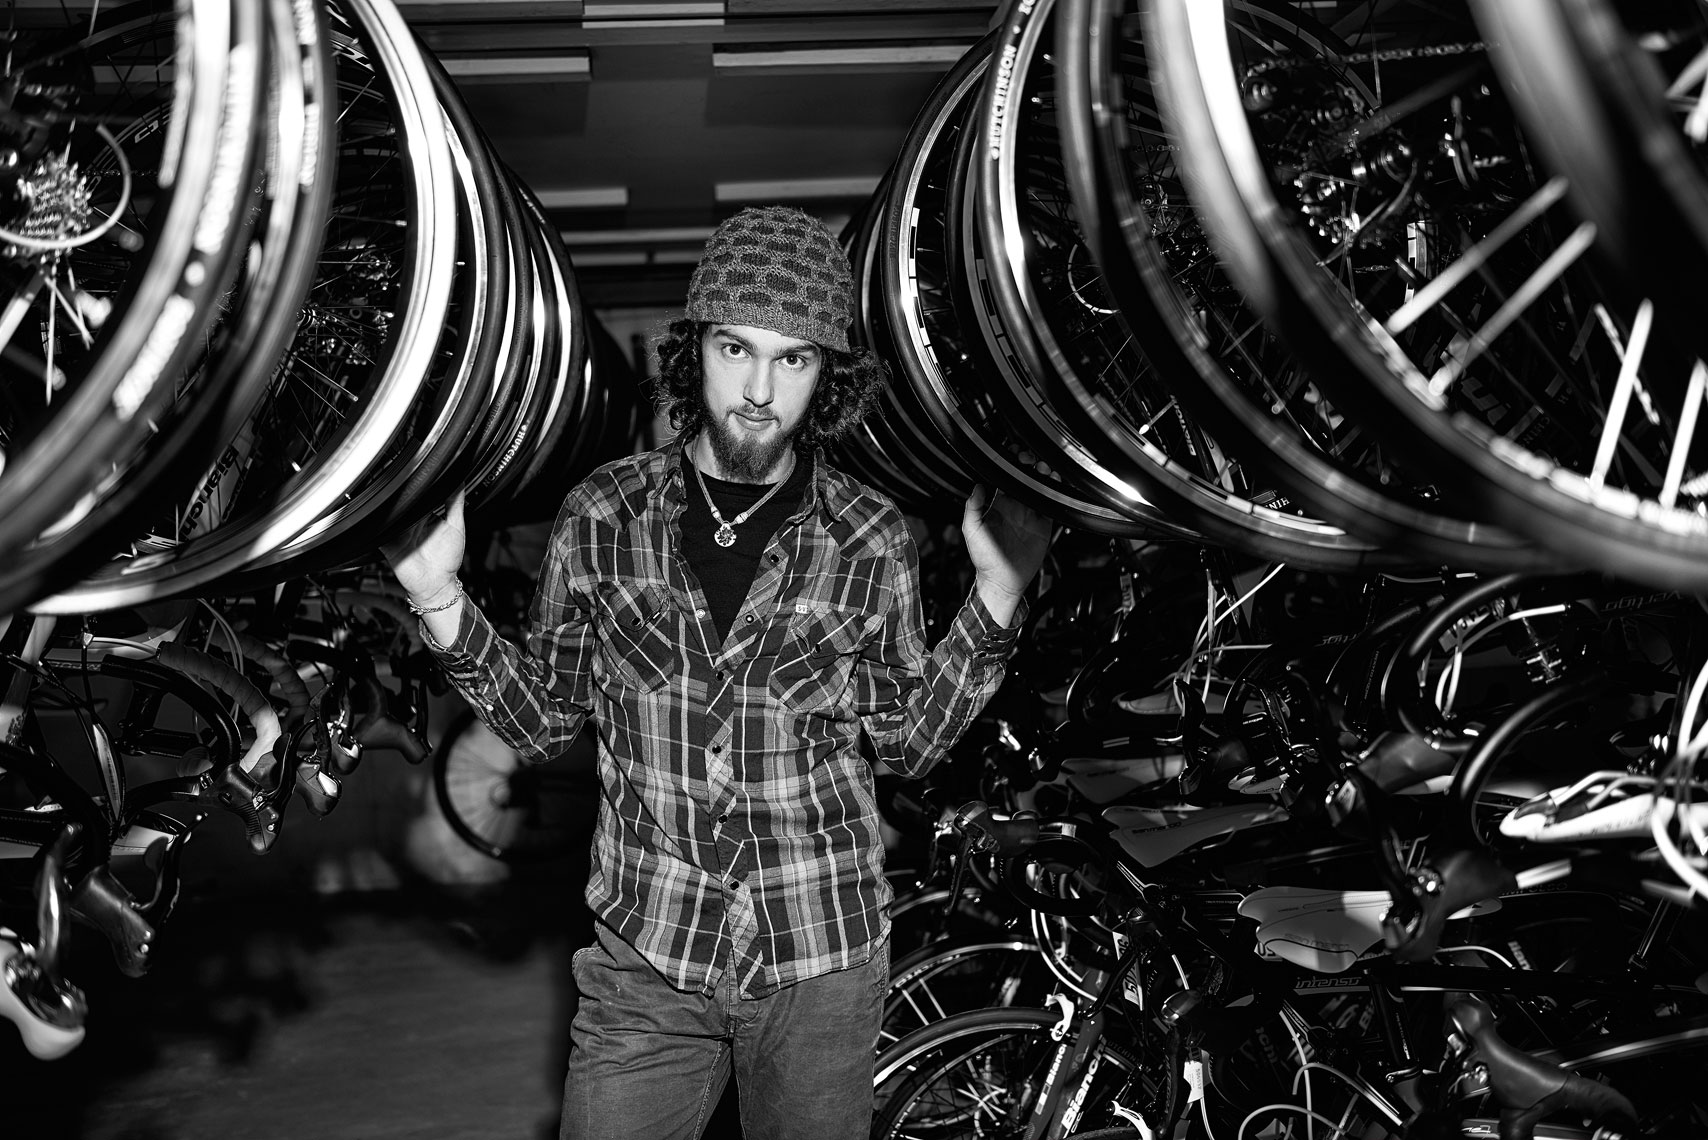 Black and white of a young man in a bike shop